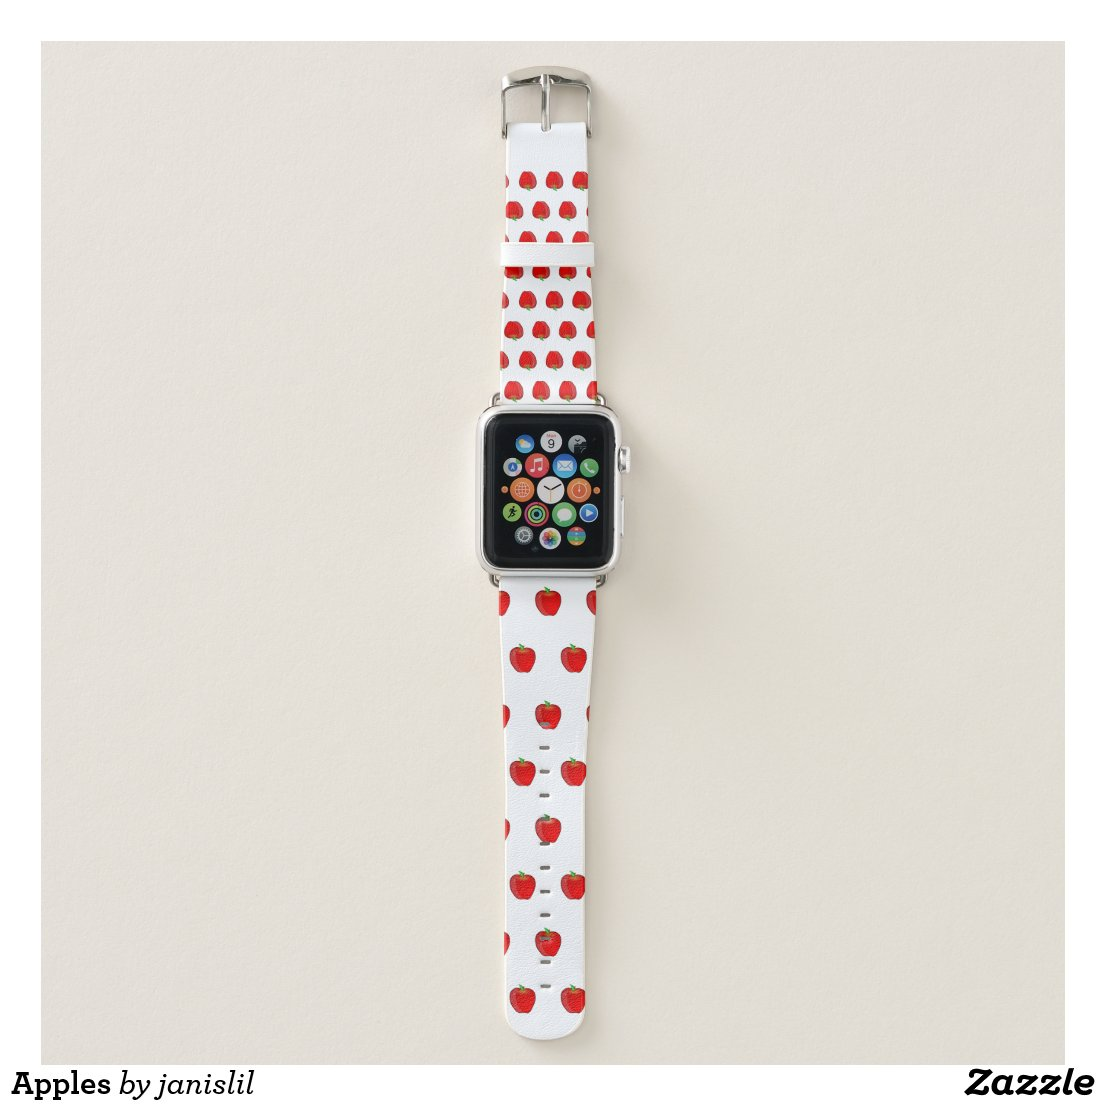 Apple Watch Band With Apples